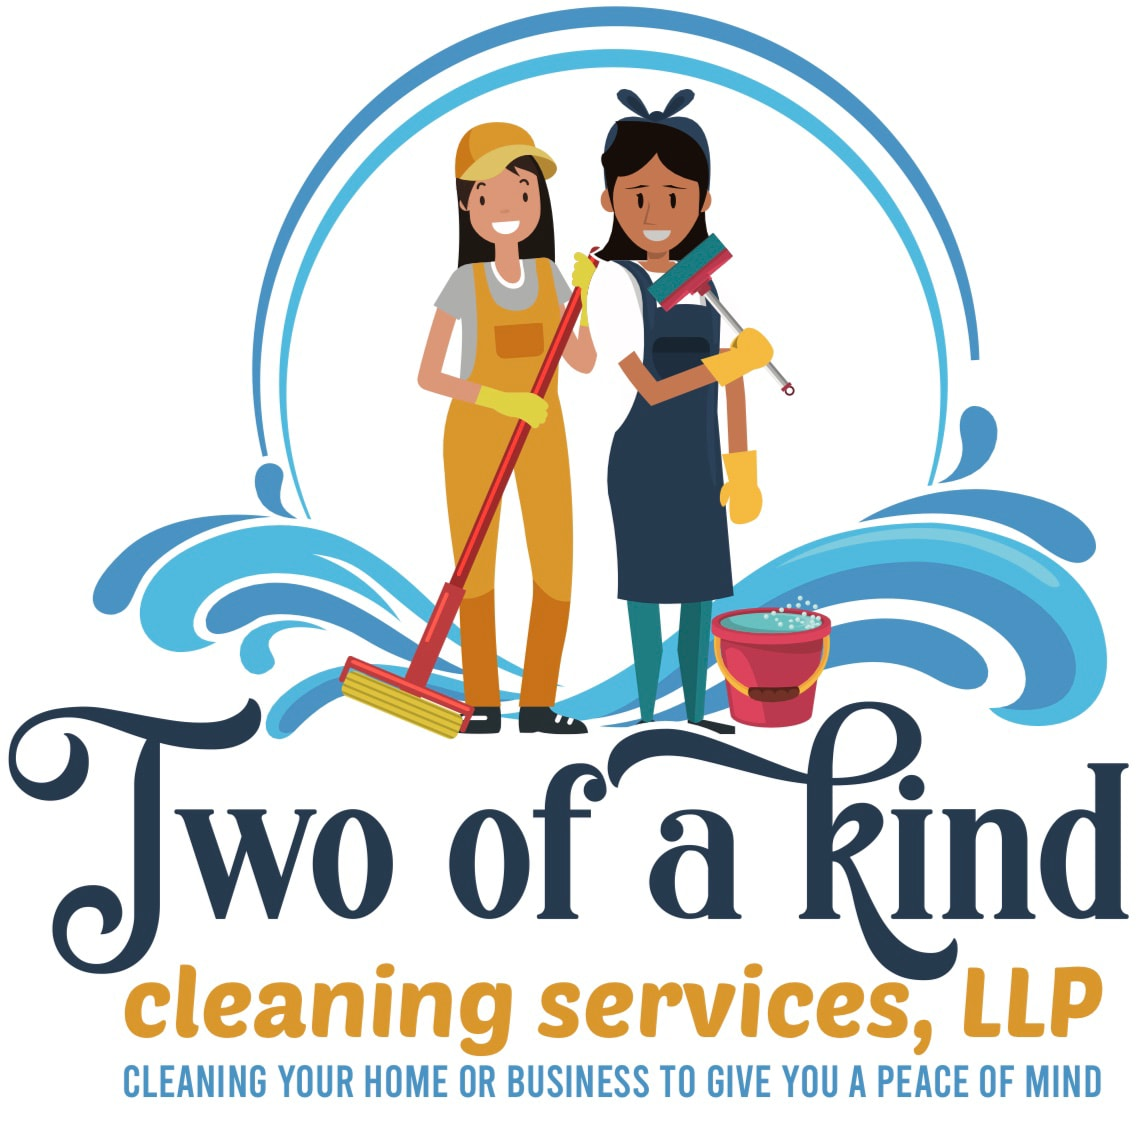 Two of a Kind Cleaning Services, LLP